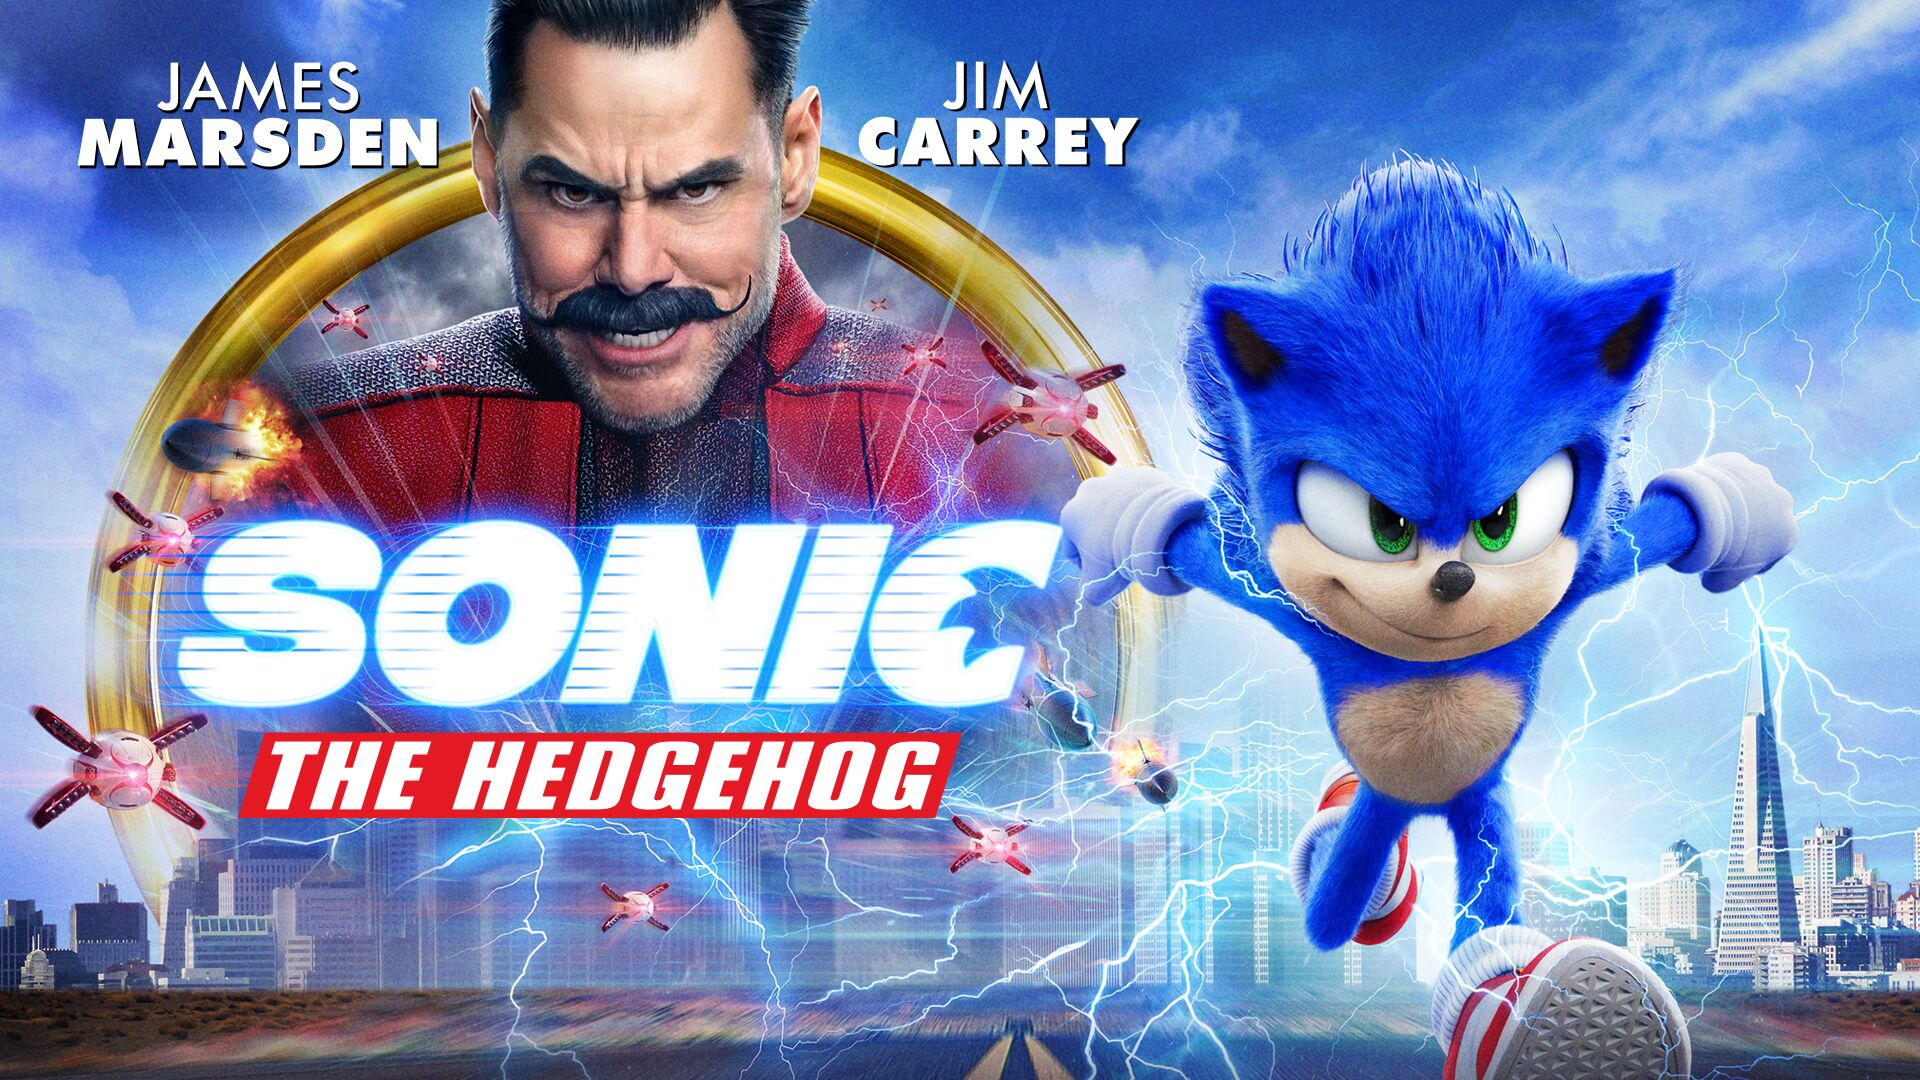 Sonic The Hedgehog Races To Digital On March 31 4k Blu Ray To Follow In May